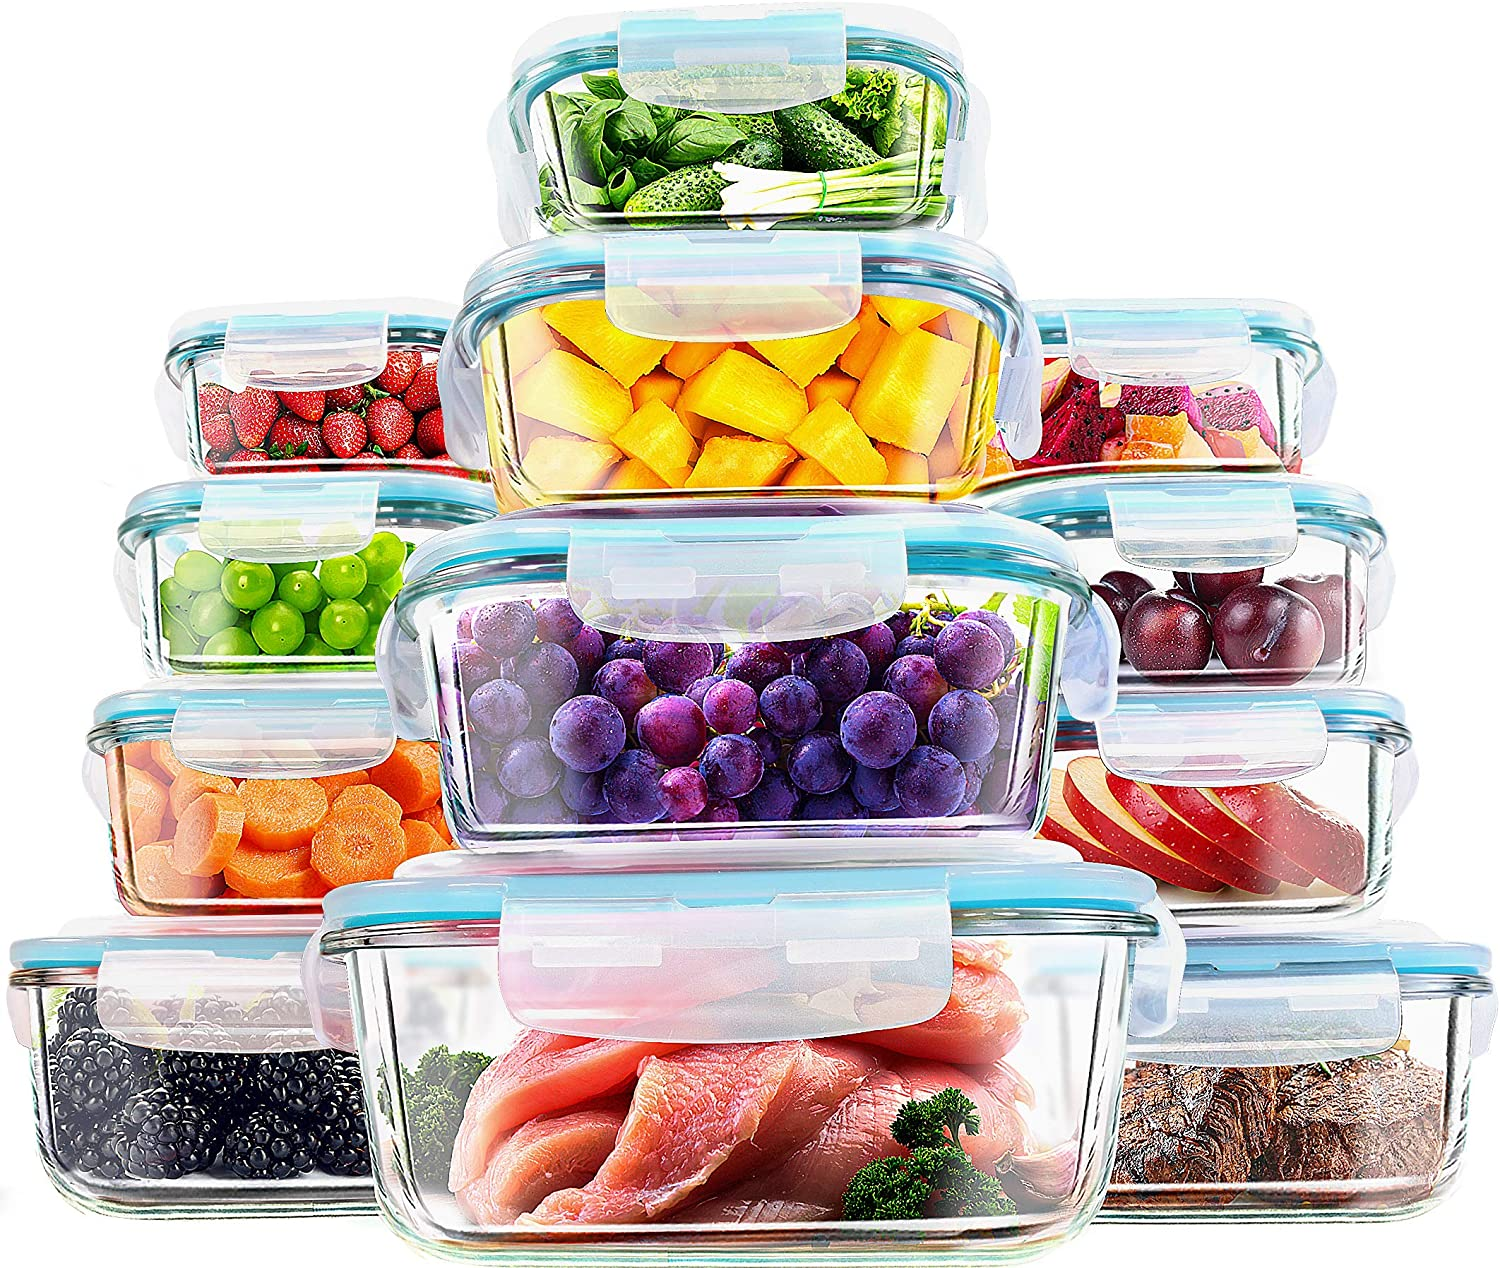 Utopia Kitchen- 24 Piece Glass Food Storage Container (12 containers,12 transparent lids)- Stackable & Leak-proof- BPA Free locking lids- Easy to store food & carry on the go- From Oven to the Table